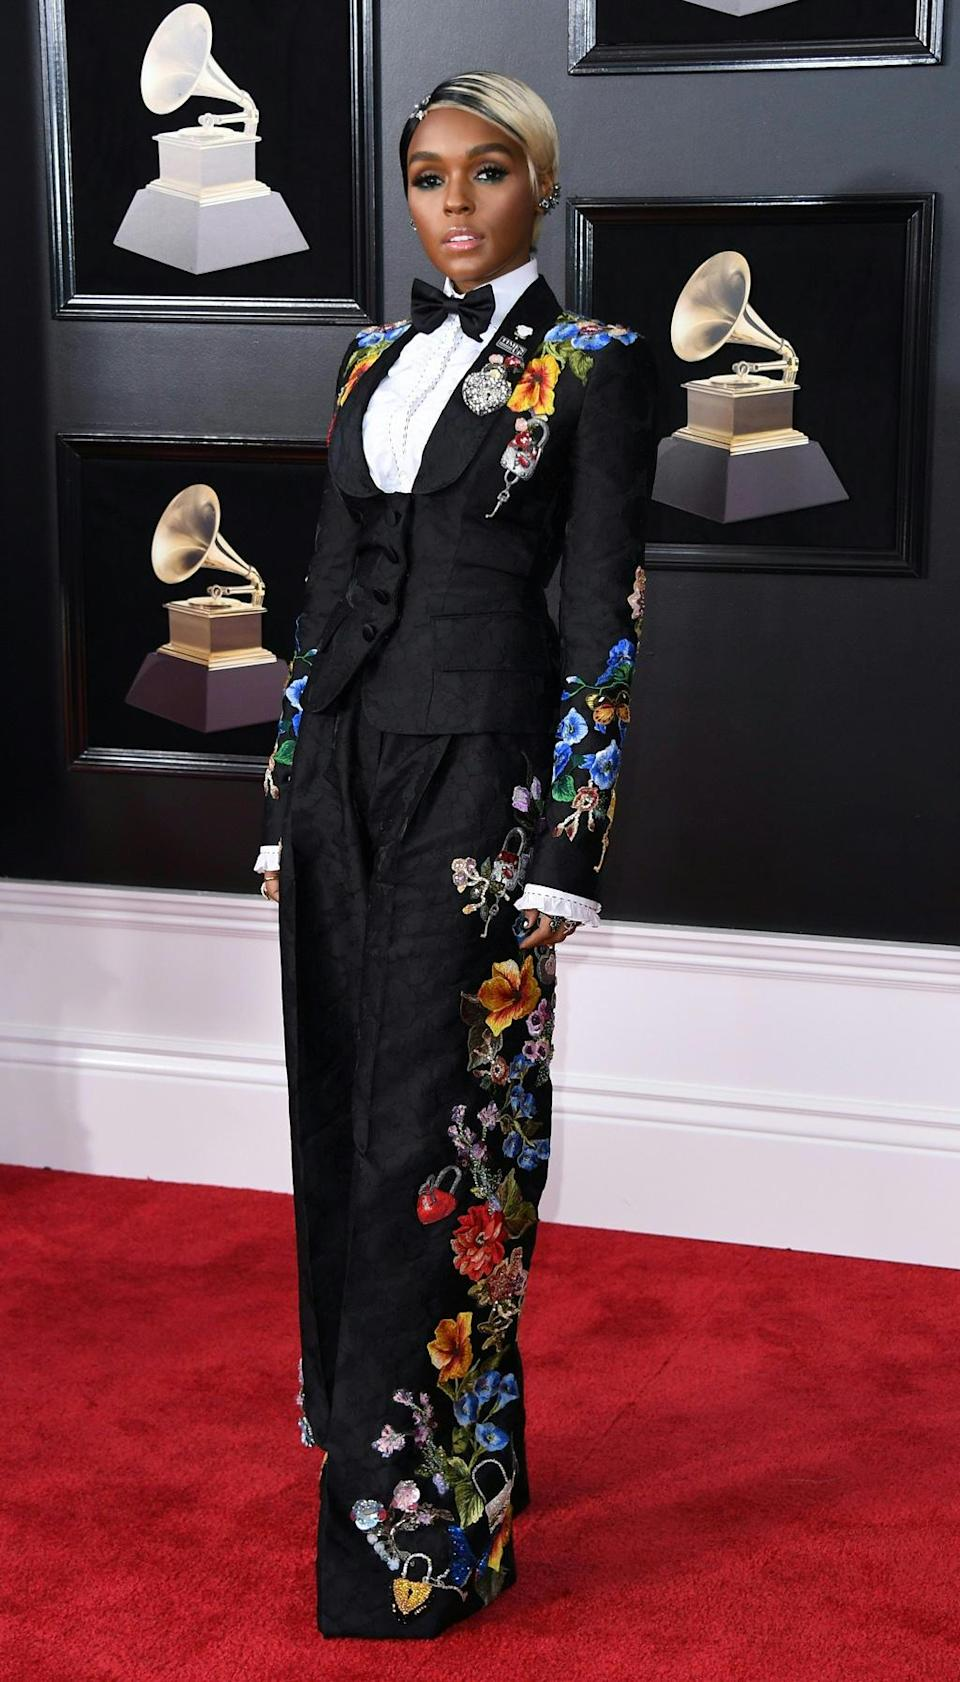 Janelle Monae stood out at the Grammy Awards in a sophisticated Dolce & Gabbana pant suit decorated with embroidered flowers. She matched it with a bow tie for an added masculine twist. New York, January 28, 2018.